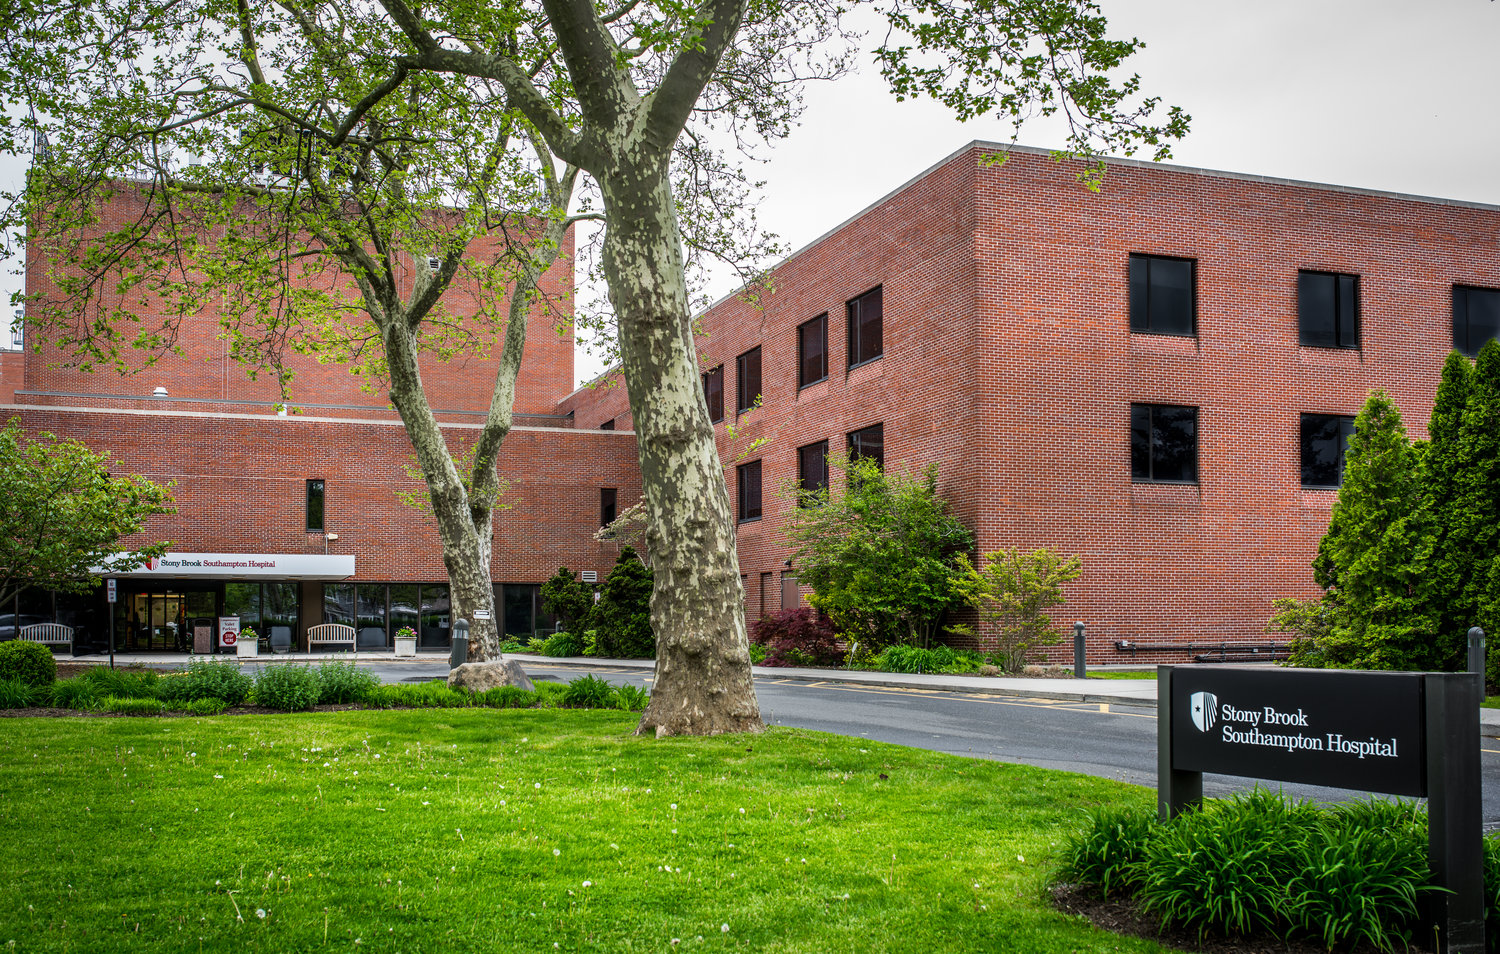 Stony Brook Southampton Hospital was named a national leader in LGBTQ health care equality.